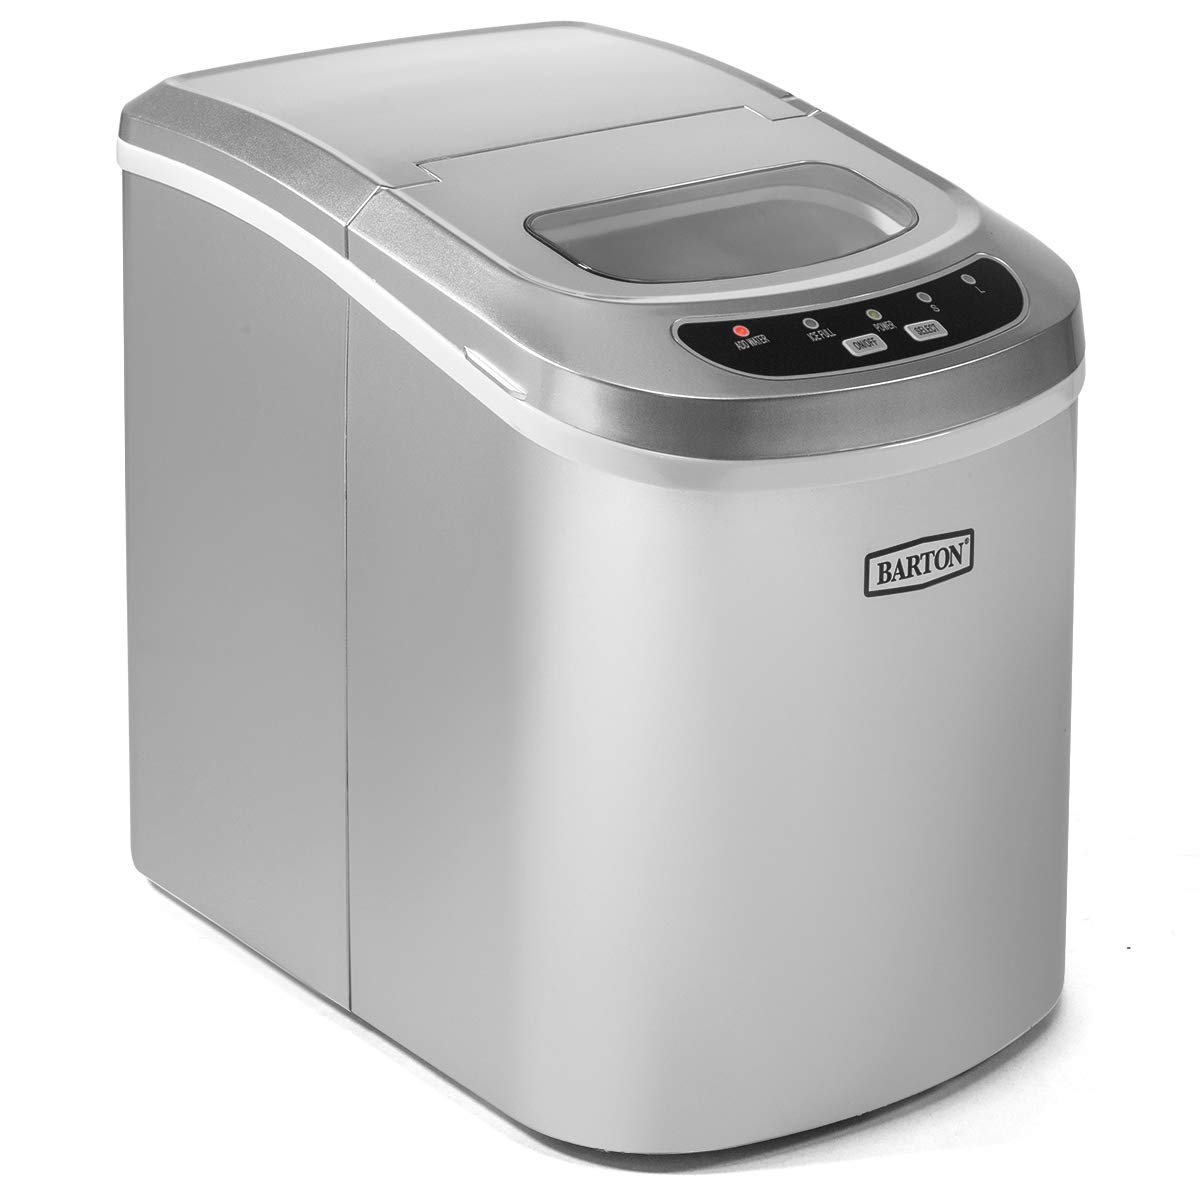 Barton Portable Ice Maker Machine for Counter Top Makes 26 lbs Per Day Ice Cubes ready in 6 Minutes Ice Maker w/Ice Scoop (Silver)